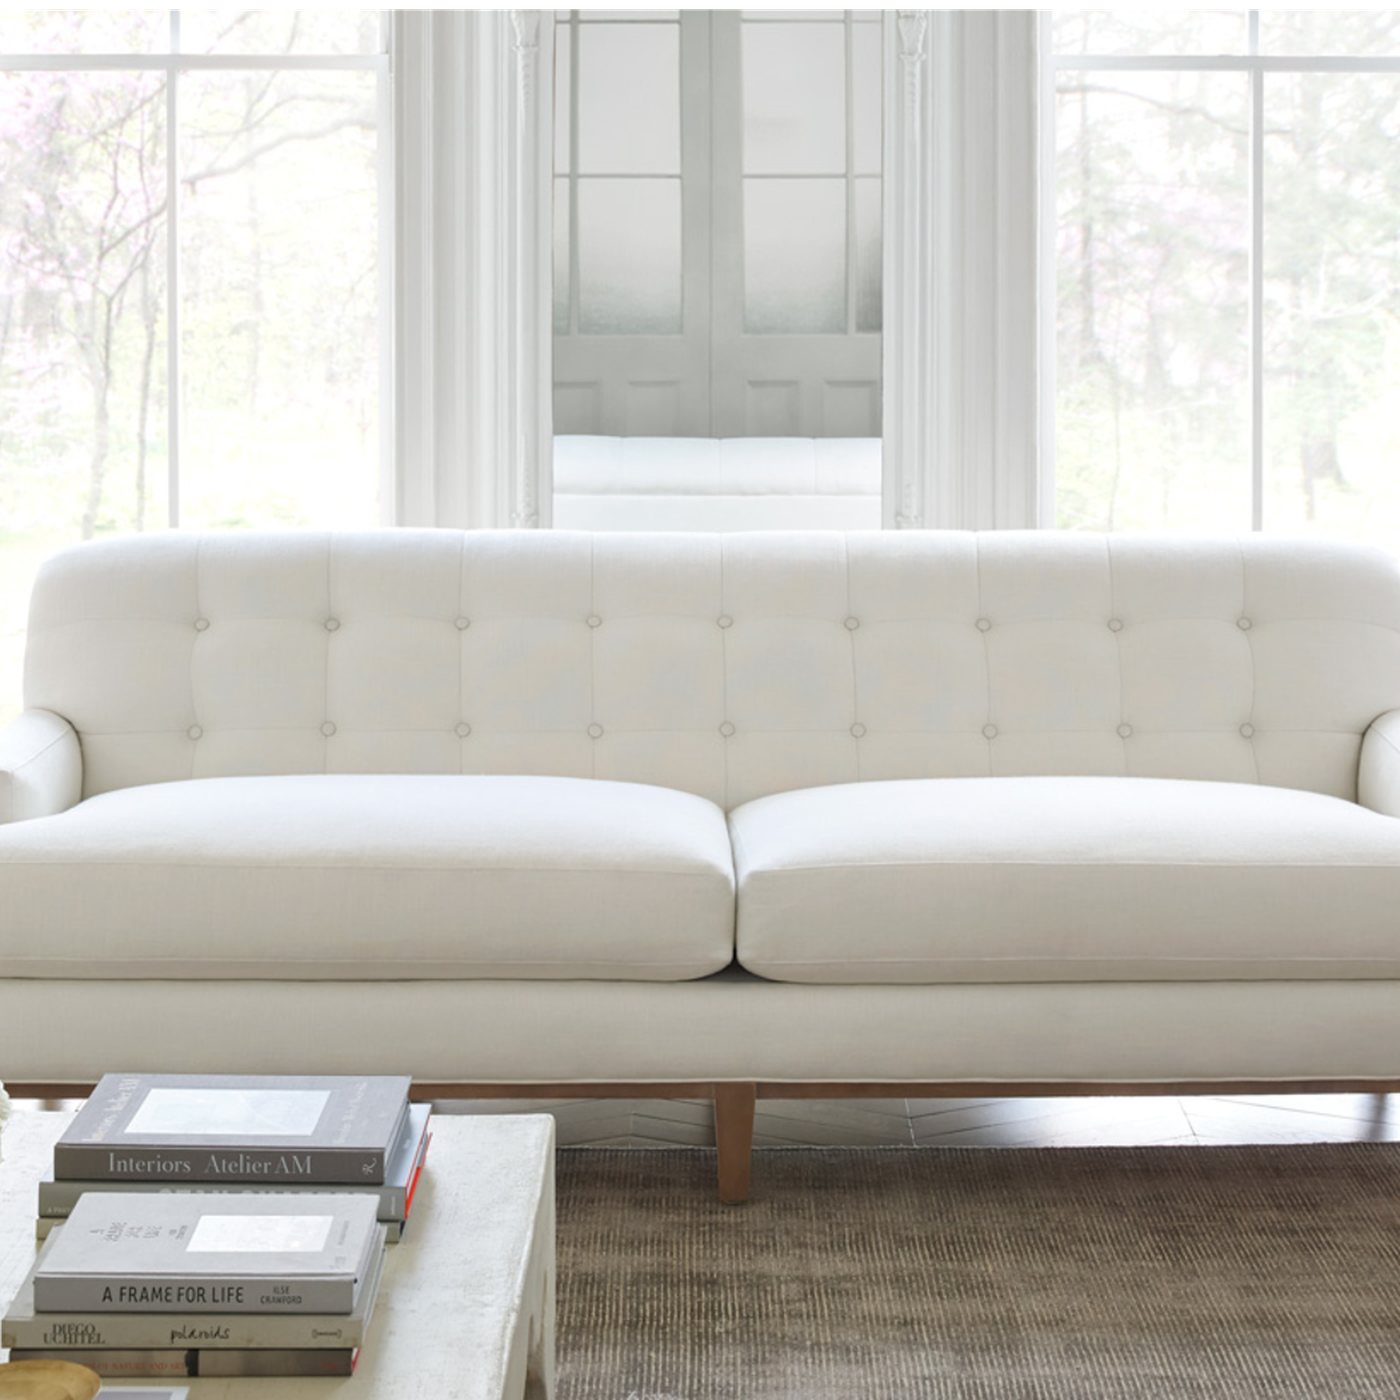 Best Value Sofas To Buy Online According To Interior Designers Curbed